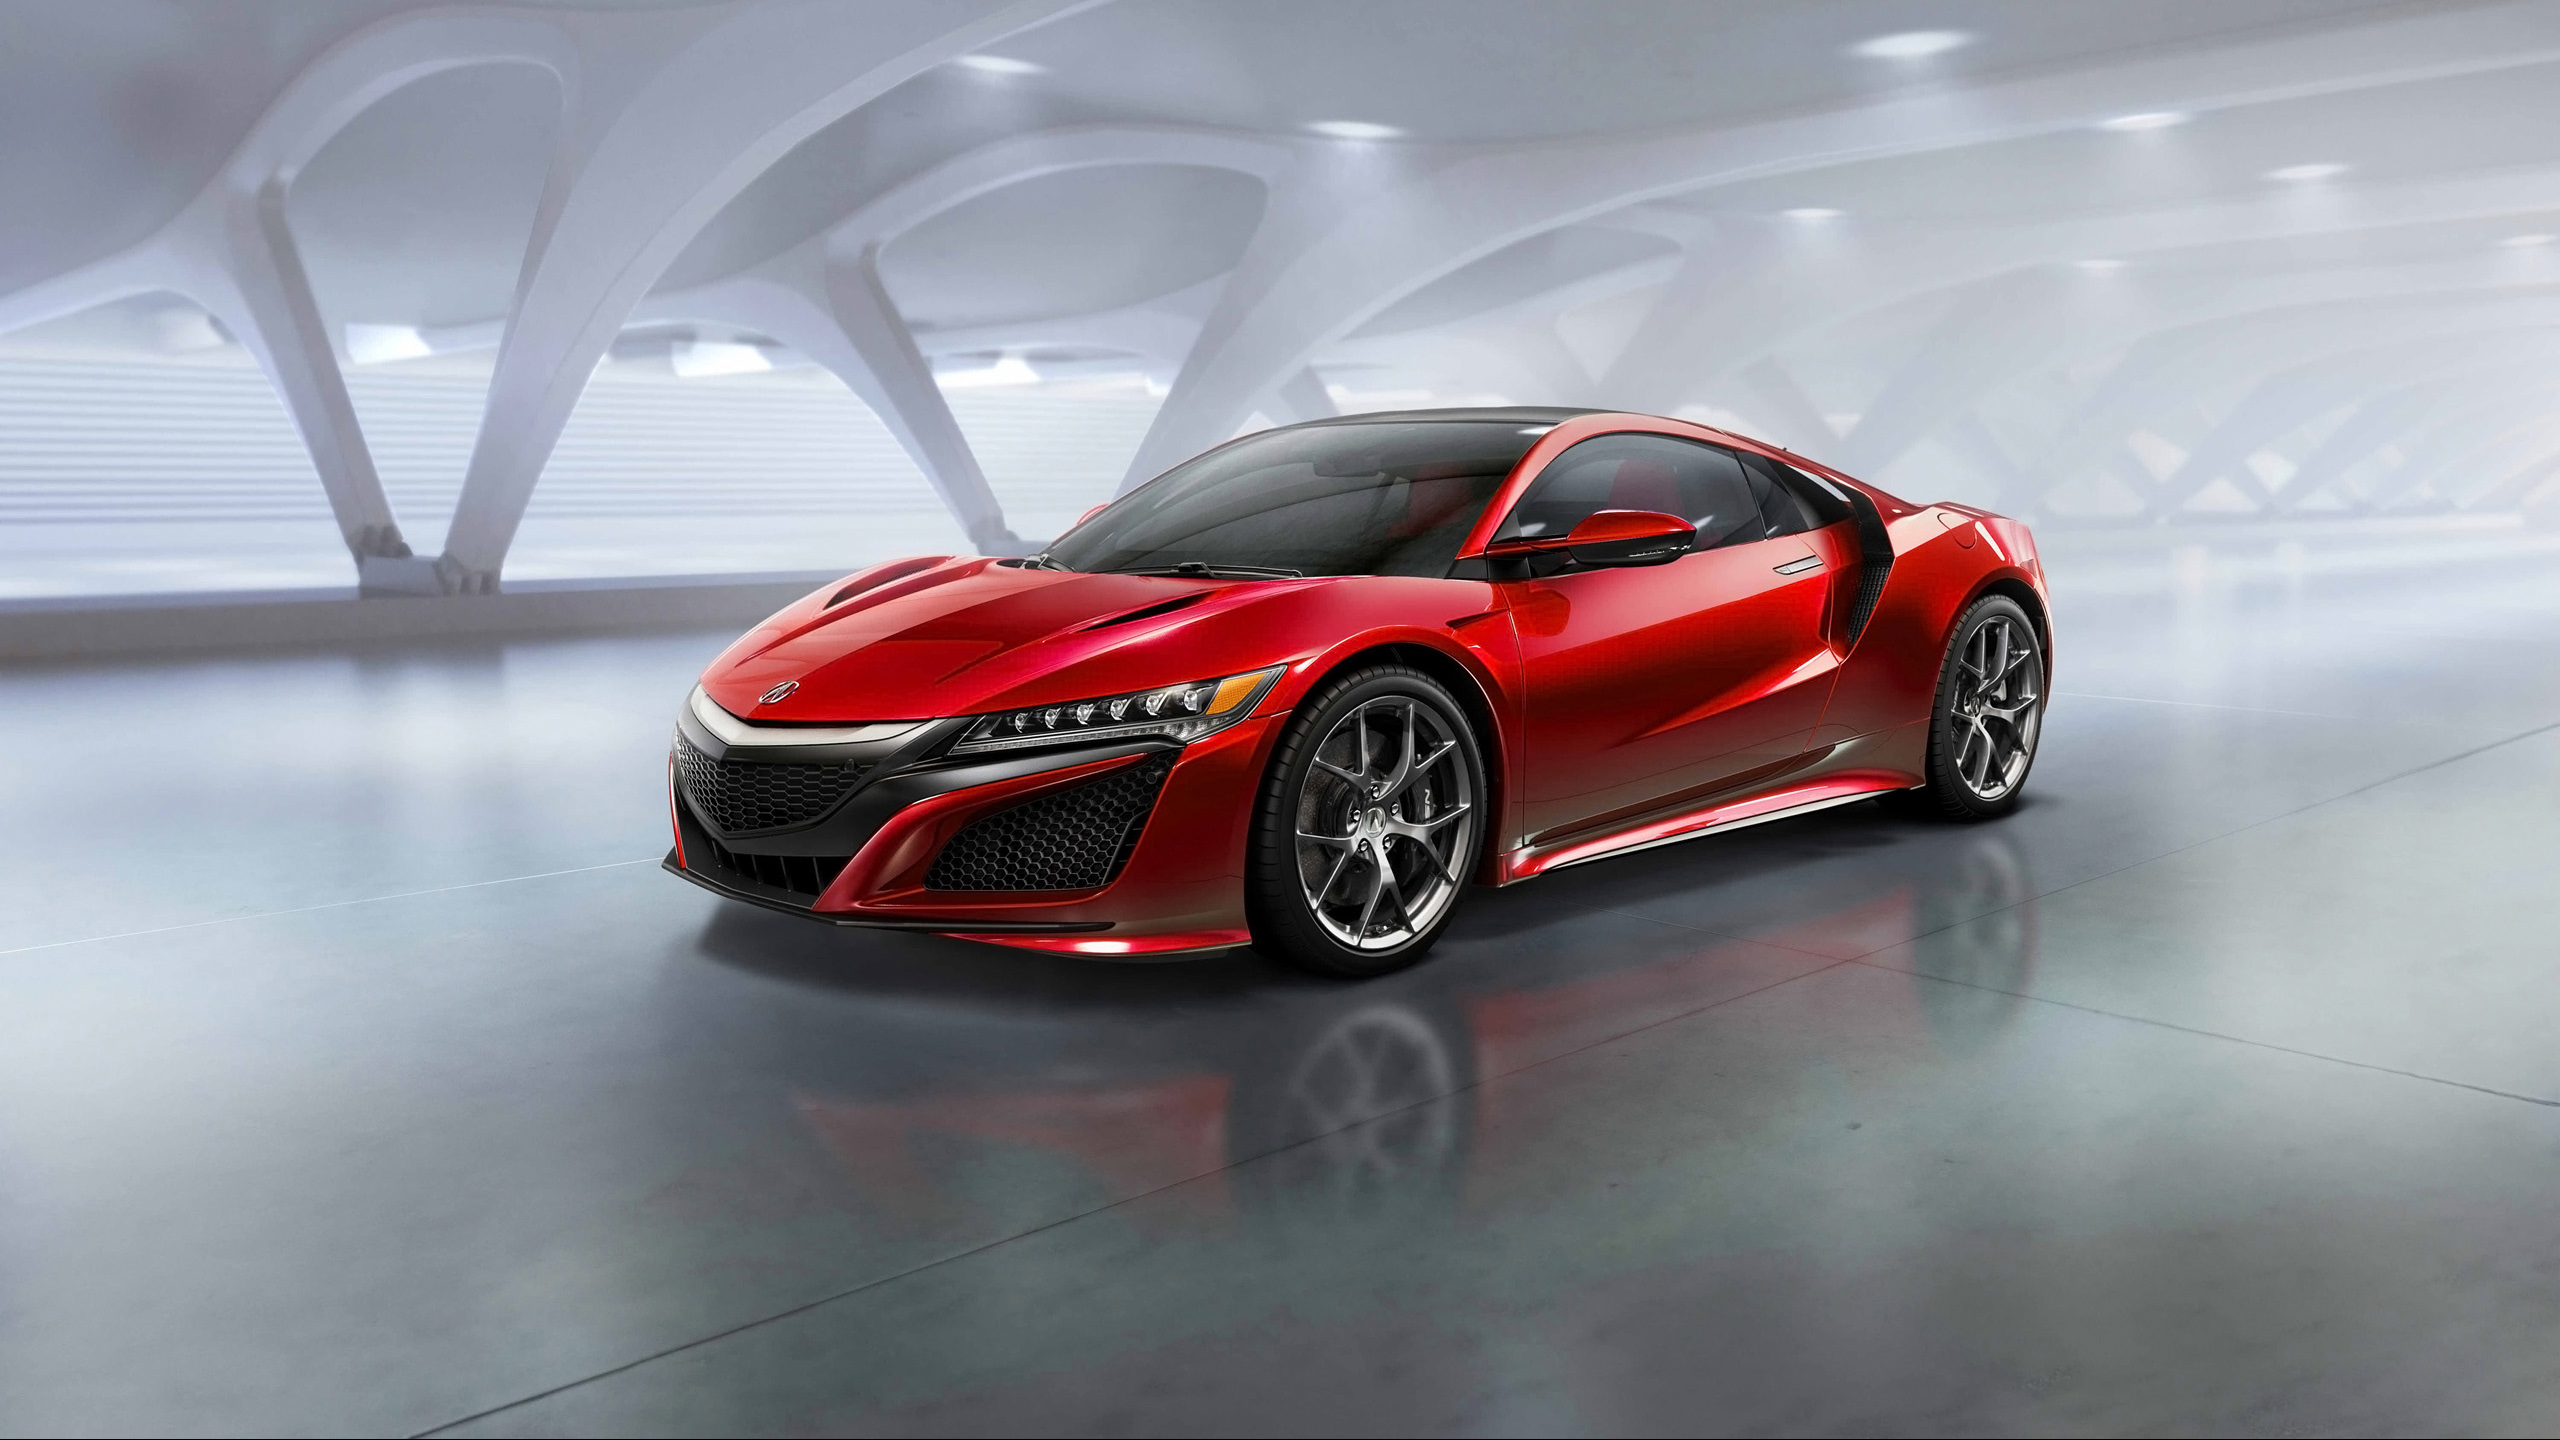 2016 acura nsx 3 wallpaper hd car wallpapers id 5056. Black Bedroom Furniture Sets. Home Design Ideas